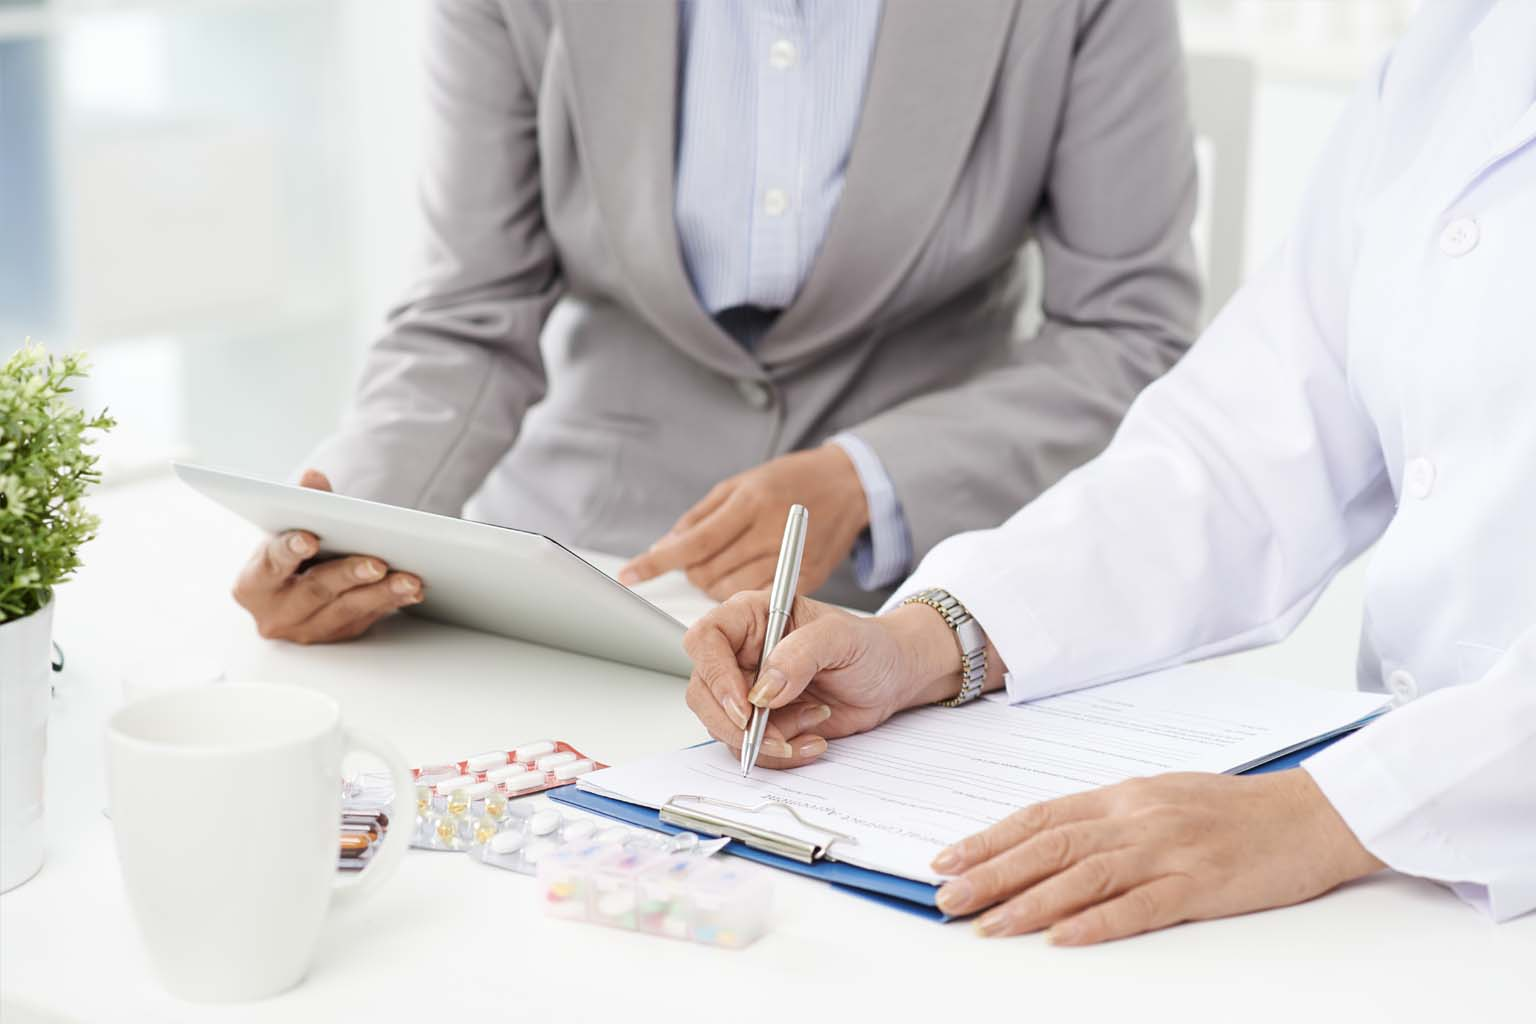 business meeting with medication sample, tablet, and contract